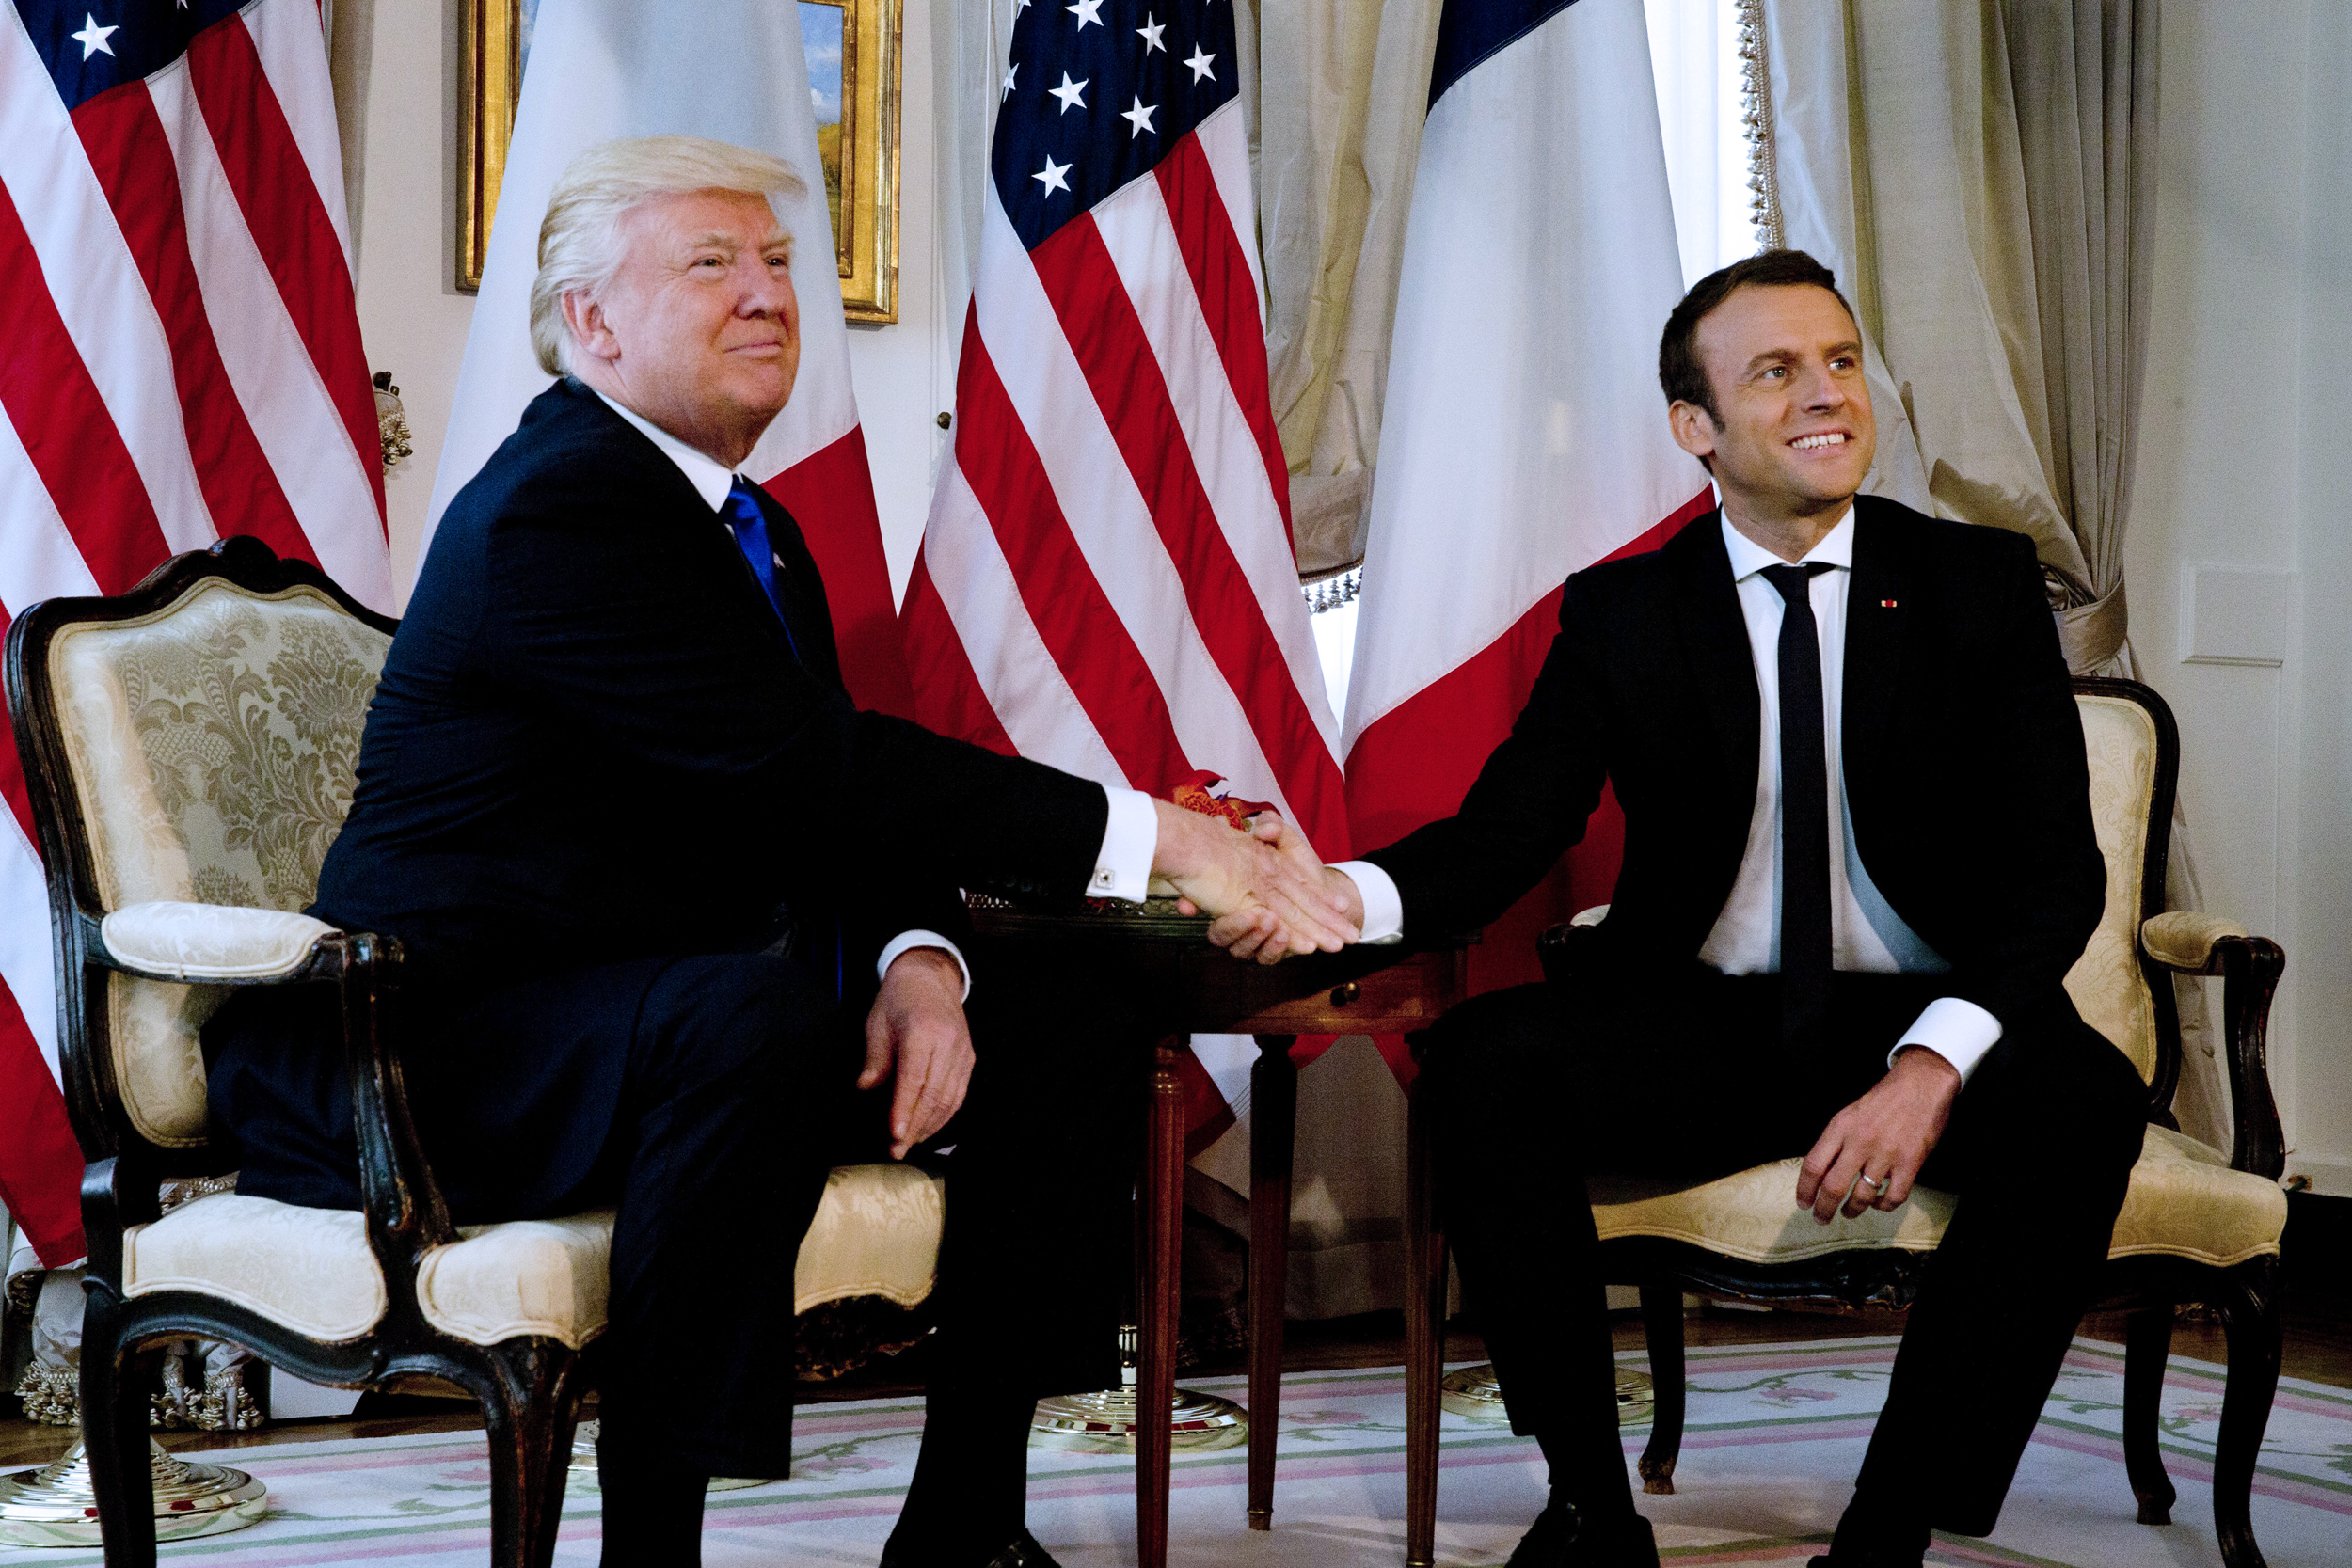 Image: President Donald Trump shakes hands with French President Emmanuel Macron in Brussels